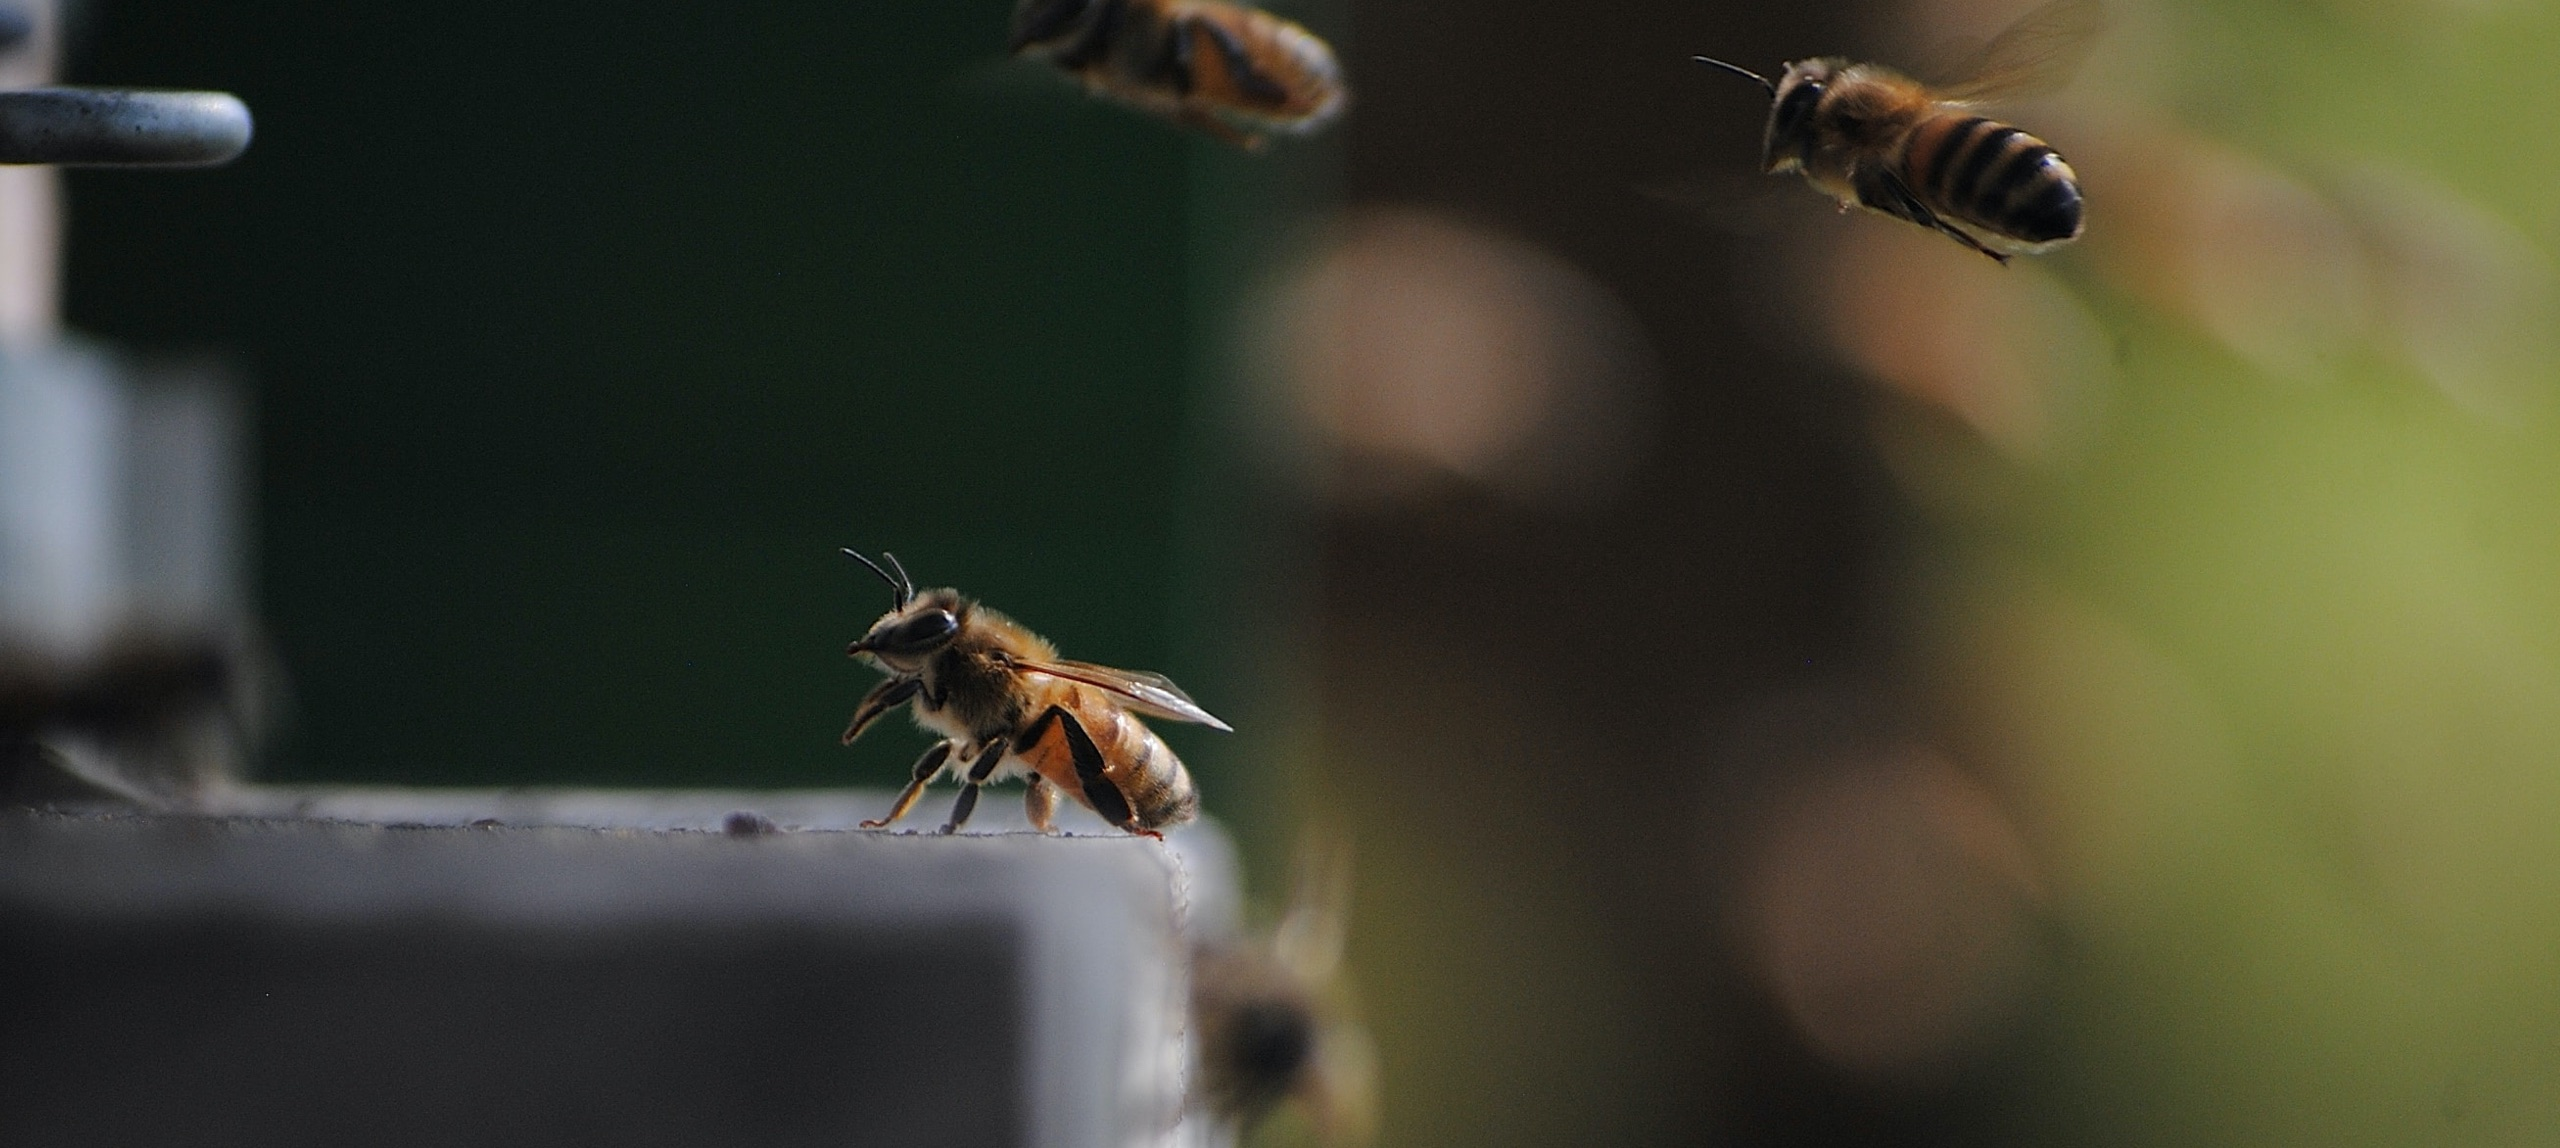 Close up on a group of bees.